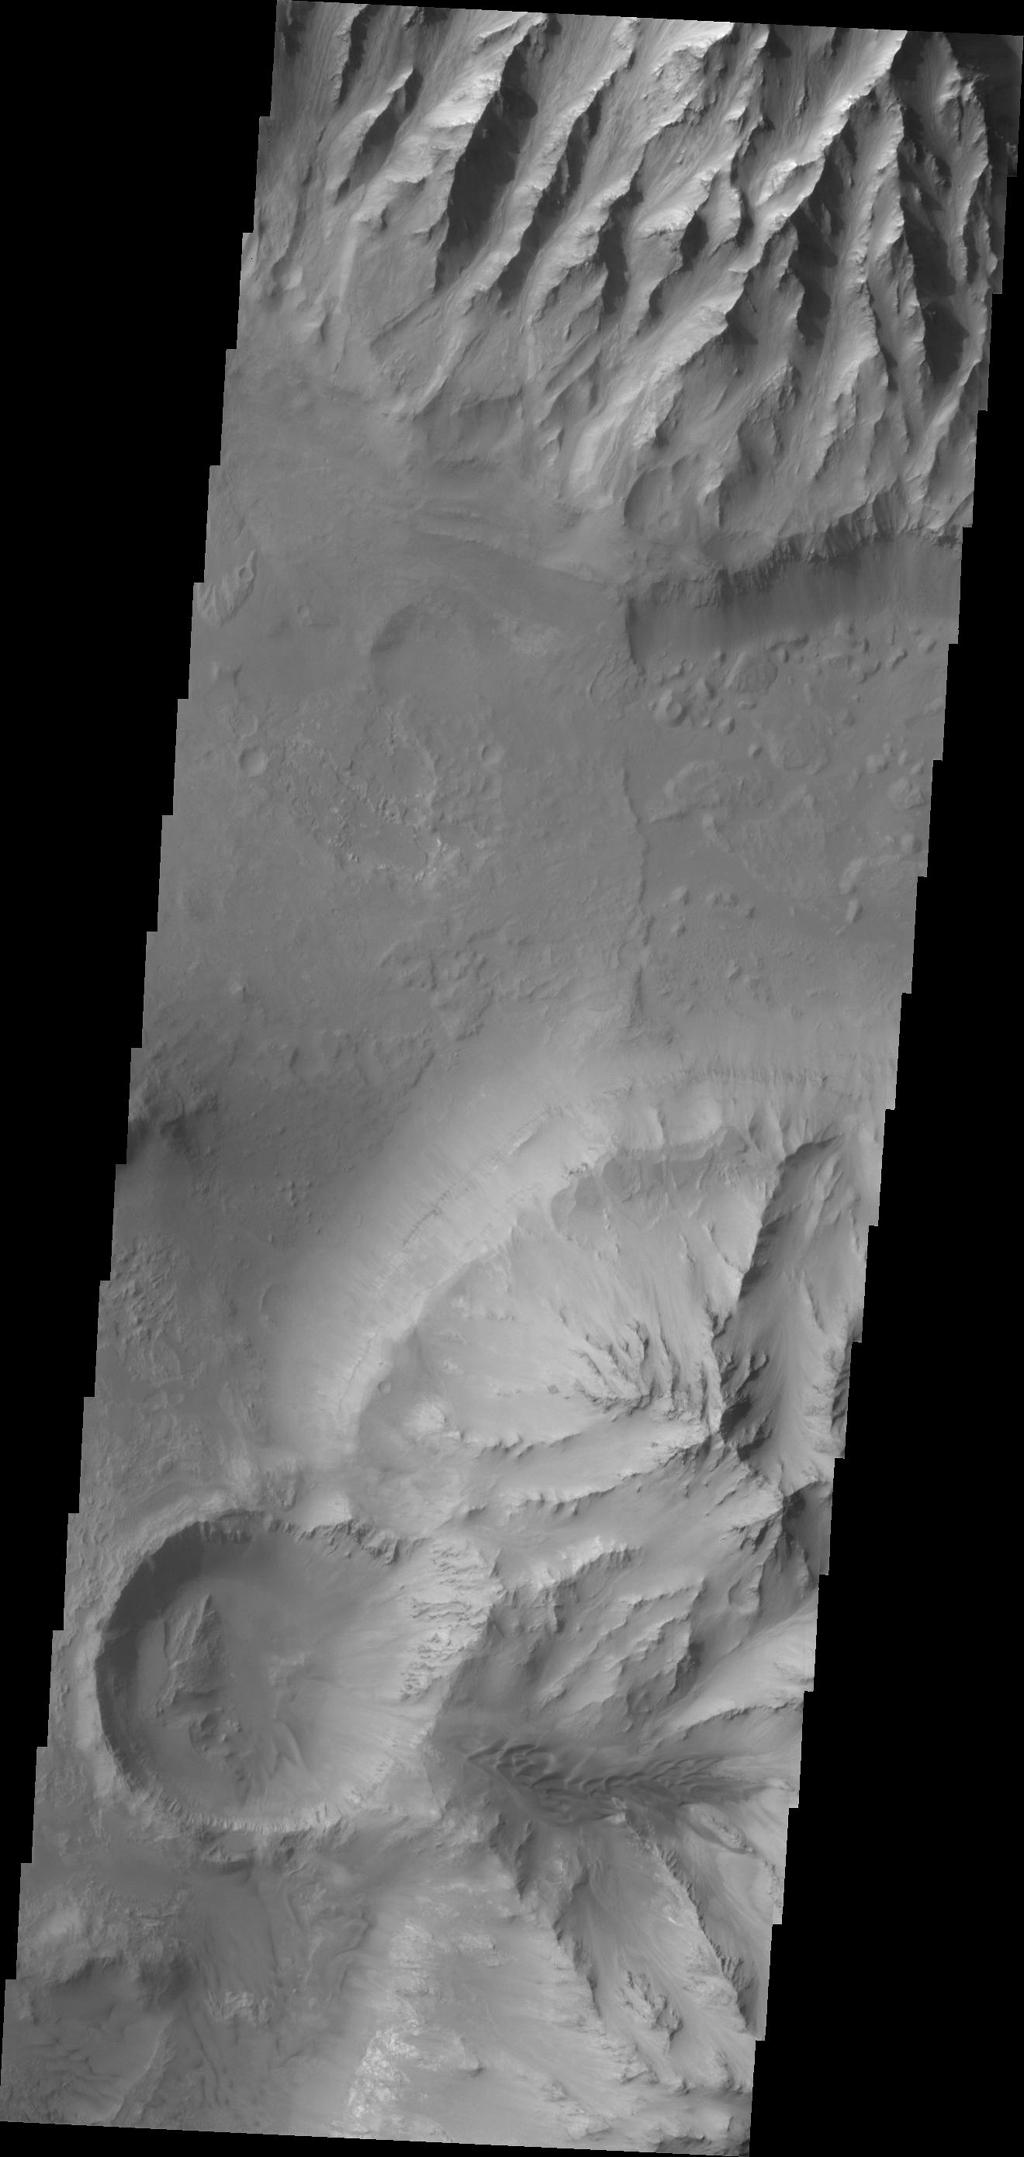 Spurs and gullies form the cliff sides of the Vallis Marineris chasmata at top of this image captured by NASA's 2001 Mars Odyssey spacecraft. Sand dunes at the bottom of image are a common feature on the floors of the chasmata.